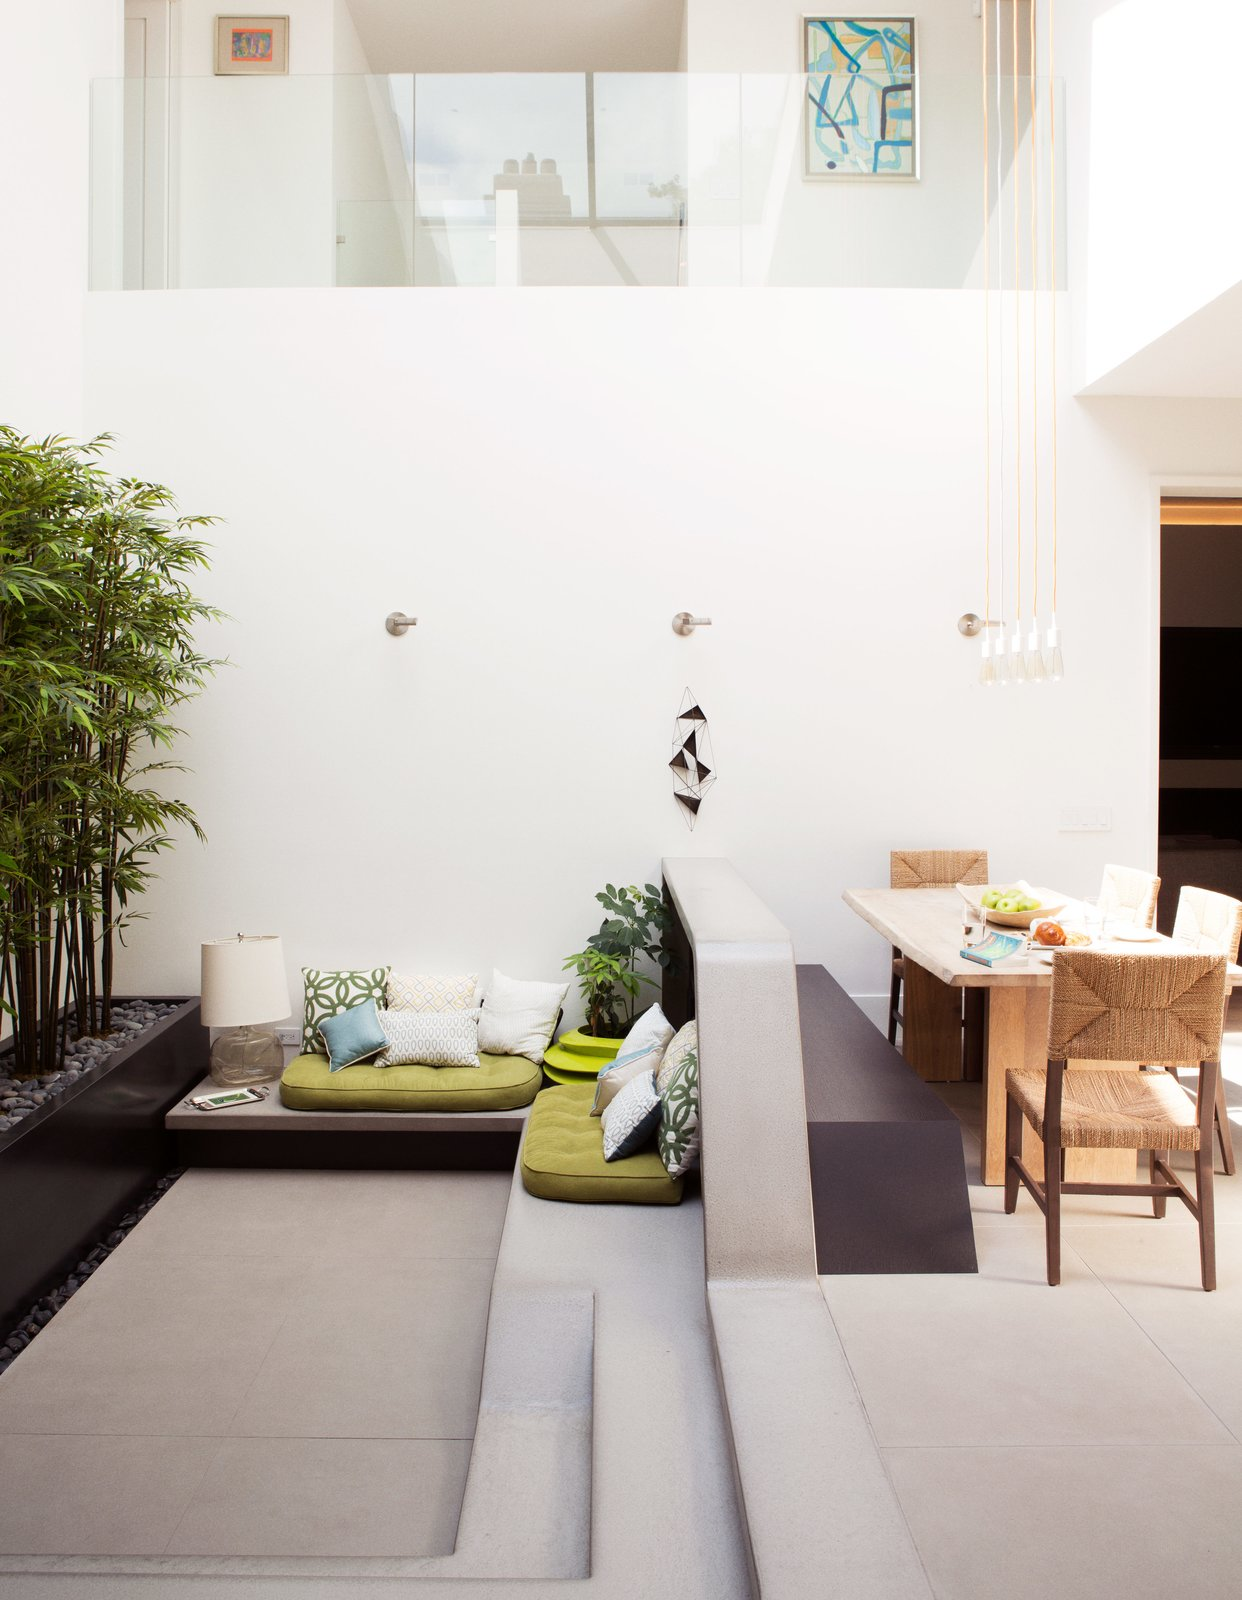 Living Room, Bench, and Concrete Floor Architect Kevin Toukoumidis and his team at dSPACE Studio reworked an unusual layout of a Chicago home to fit its new owners: a family with two children and a dog. The result was a radical change without dramatic intervention, particularly of the home's large central atrium space.  Photo 4 of 13 in An Impressive 20-Foot Skylight Transforms a Jumbled Chicago Home